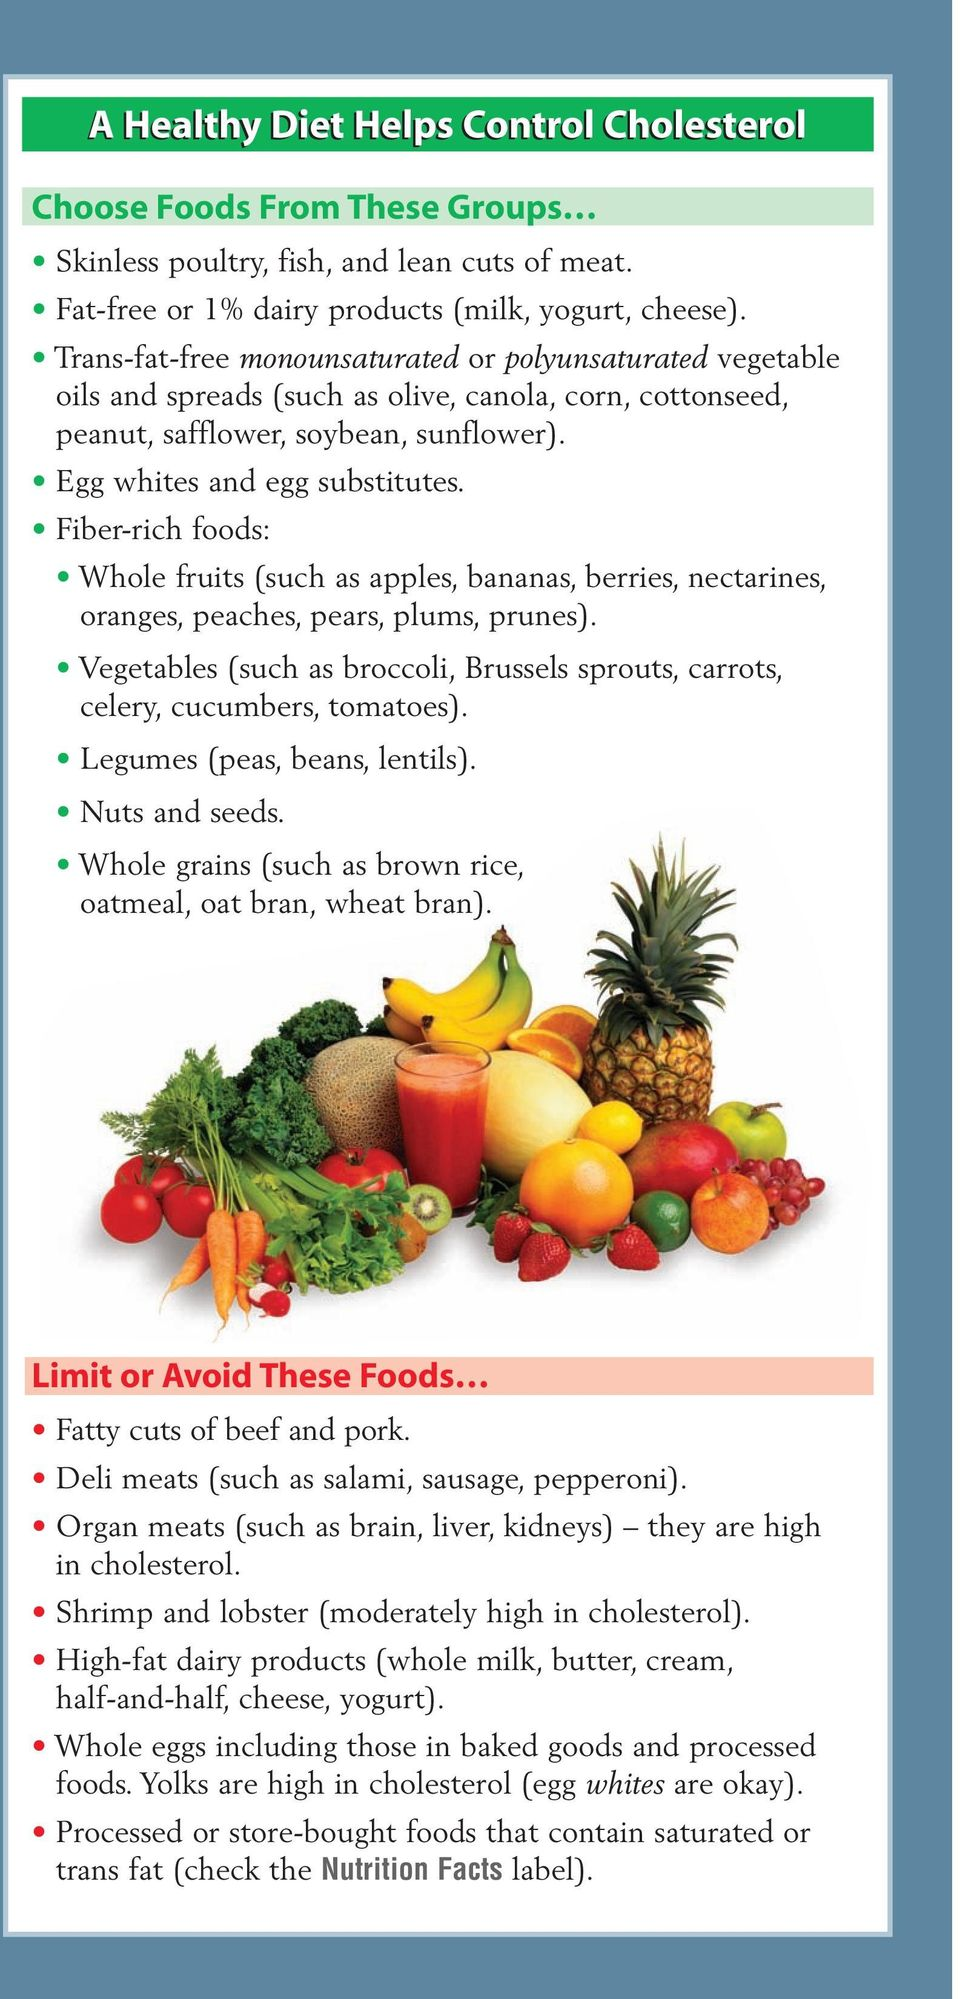 Fiber-rich foods: Whole fruits (such as apples, bananas, berries, nectarines, oranges, peaches, pears, plums, prunes).